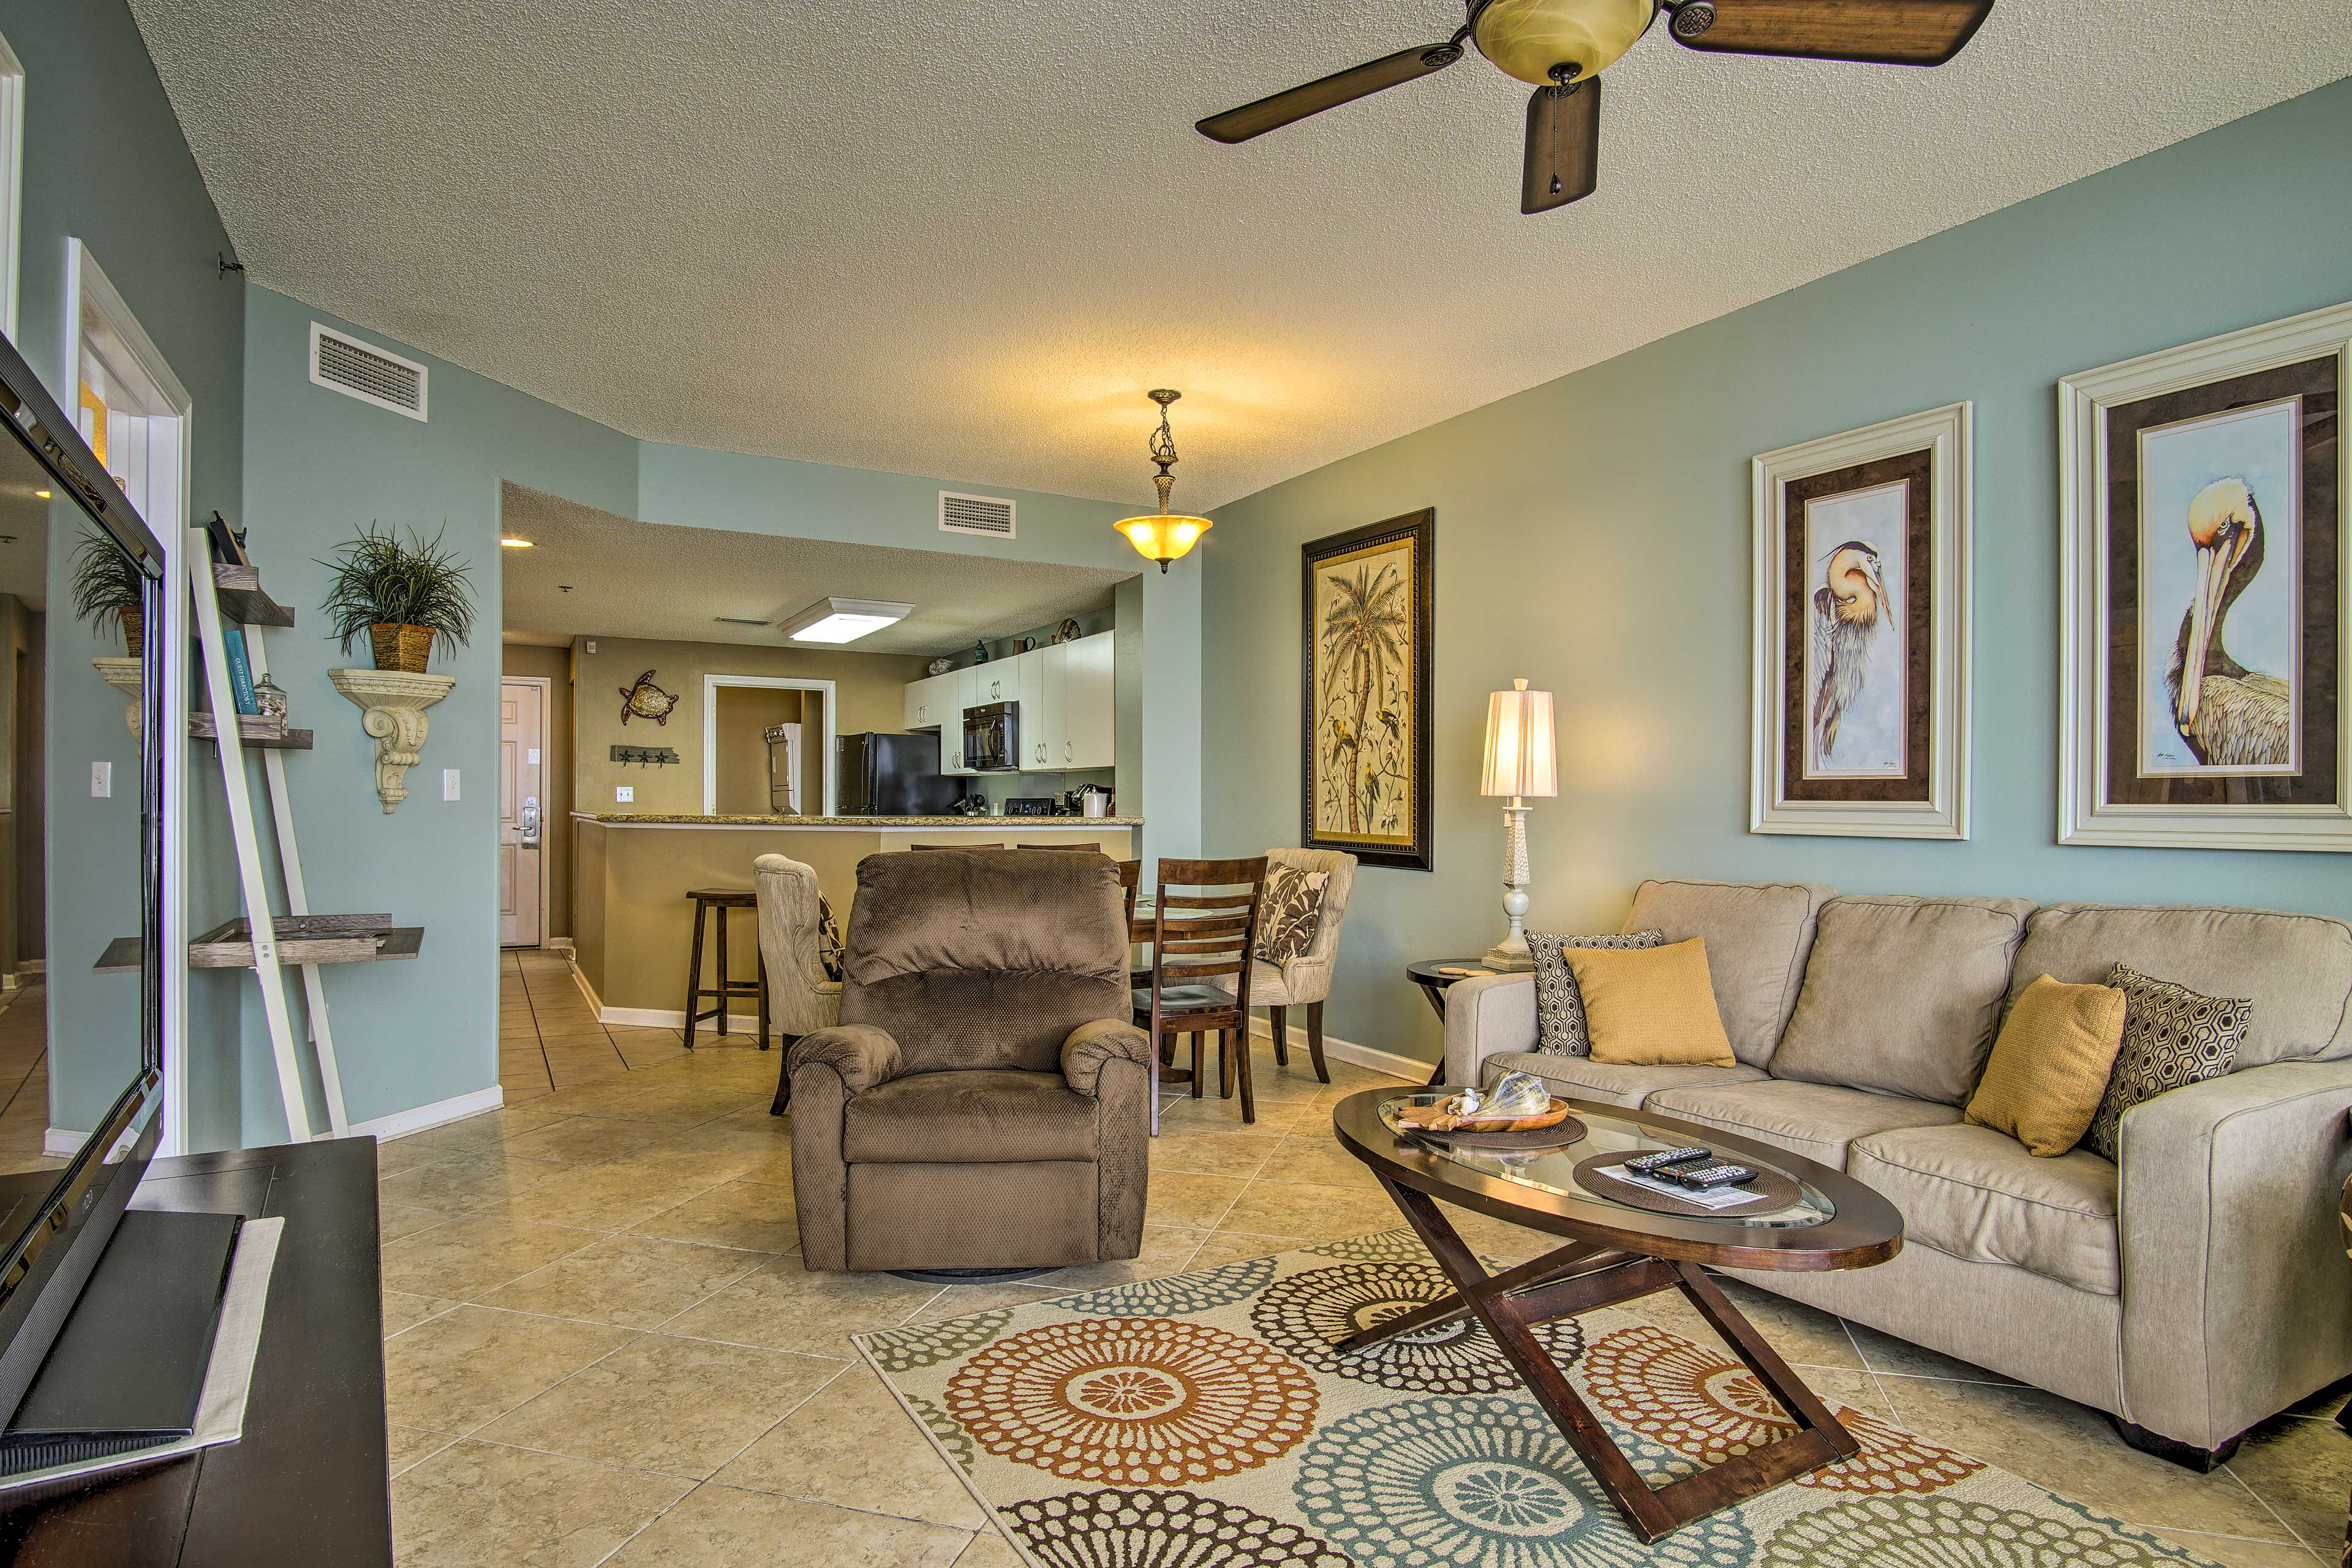 The bright and inviting living space offers 1,041 square feet.